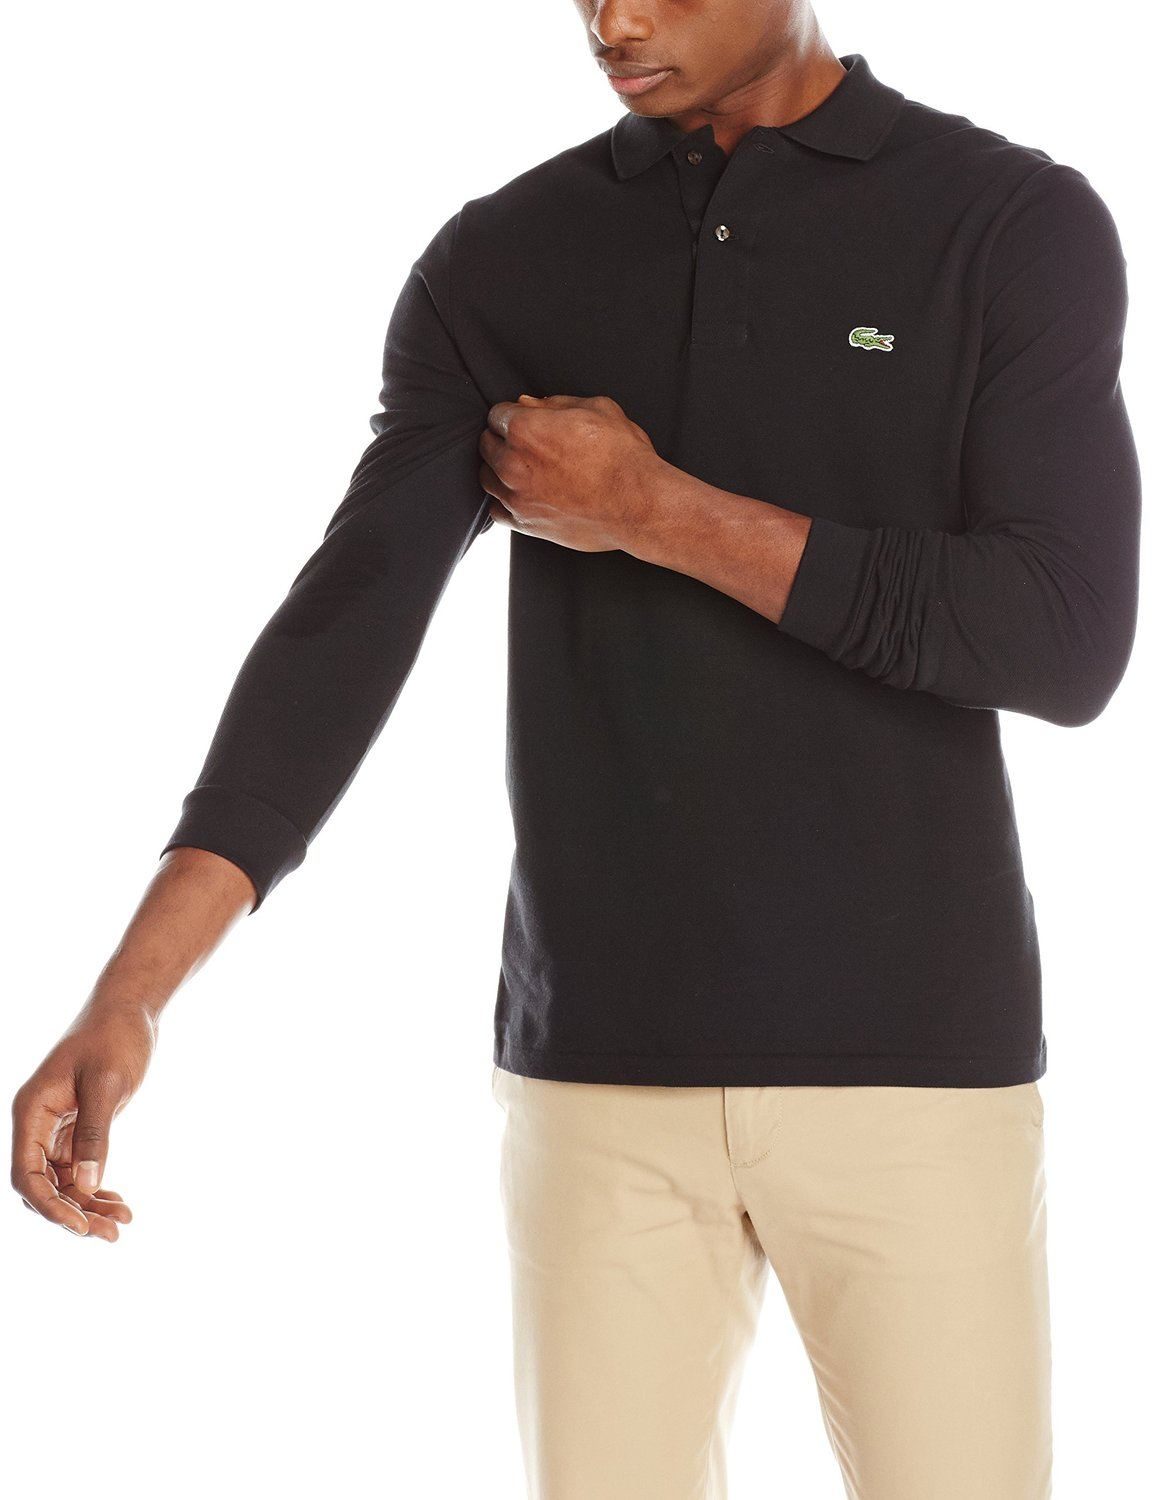 4528fa1c89 Lacoste Long Sleeve Classic Pique Polo Shirt - Mens